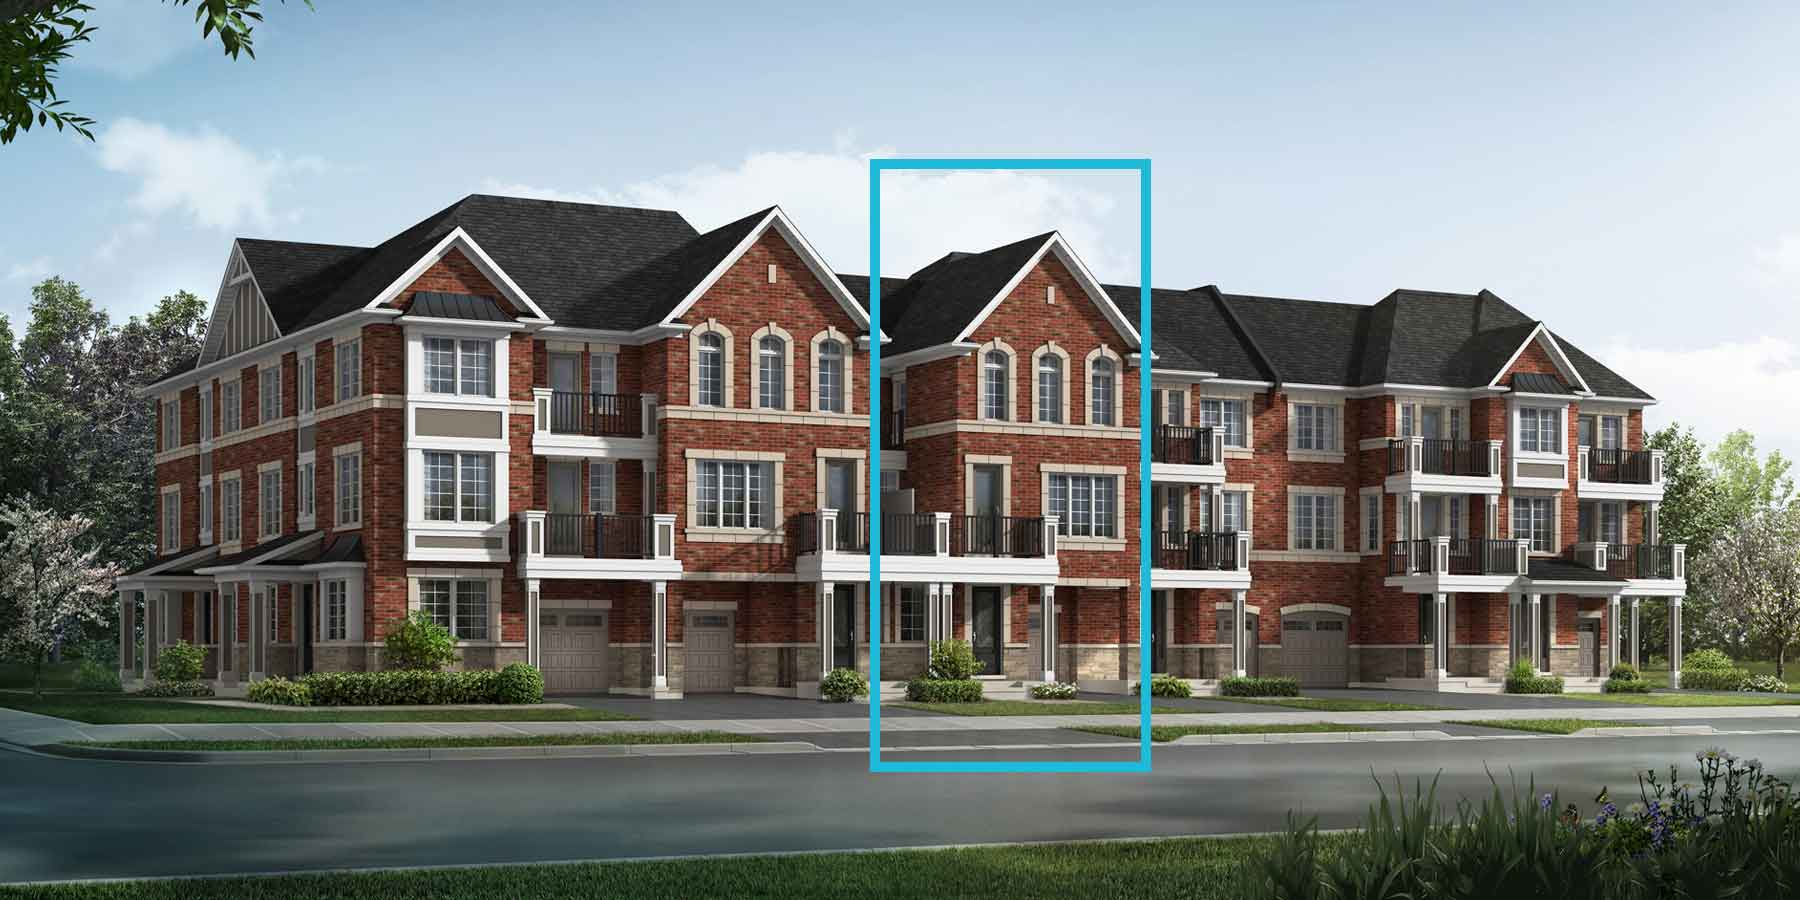 Honey Plan traditional_springwater_honey at Springwater in Markham Ontario by Mattamy Homes